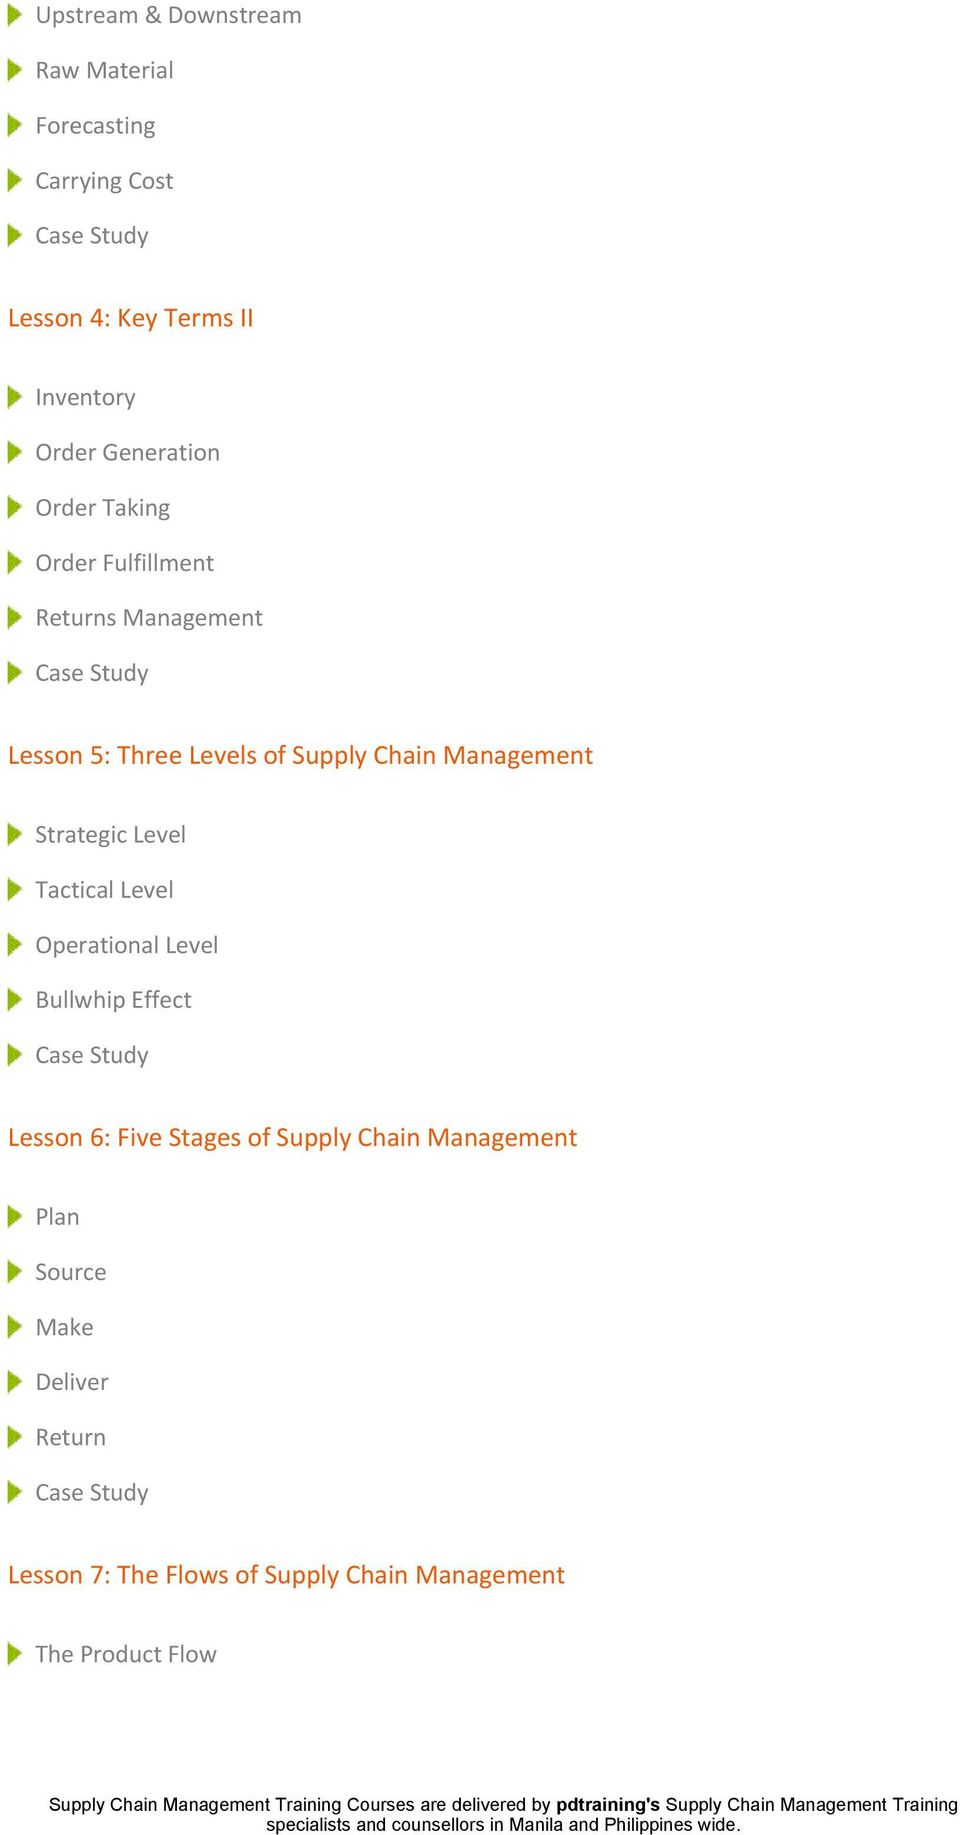 Management Strategic Level Tactical Level Operational Level Bullwhip Effect Lesson 6: Five Stages of